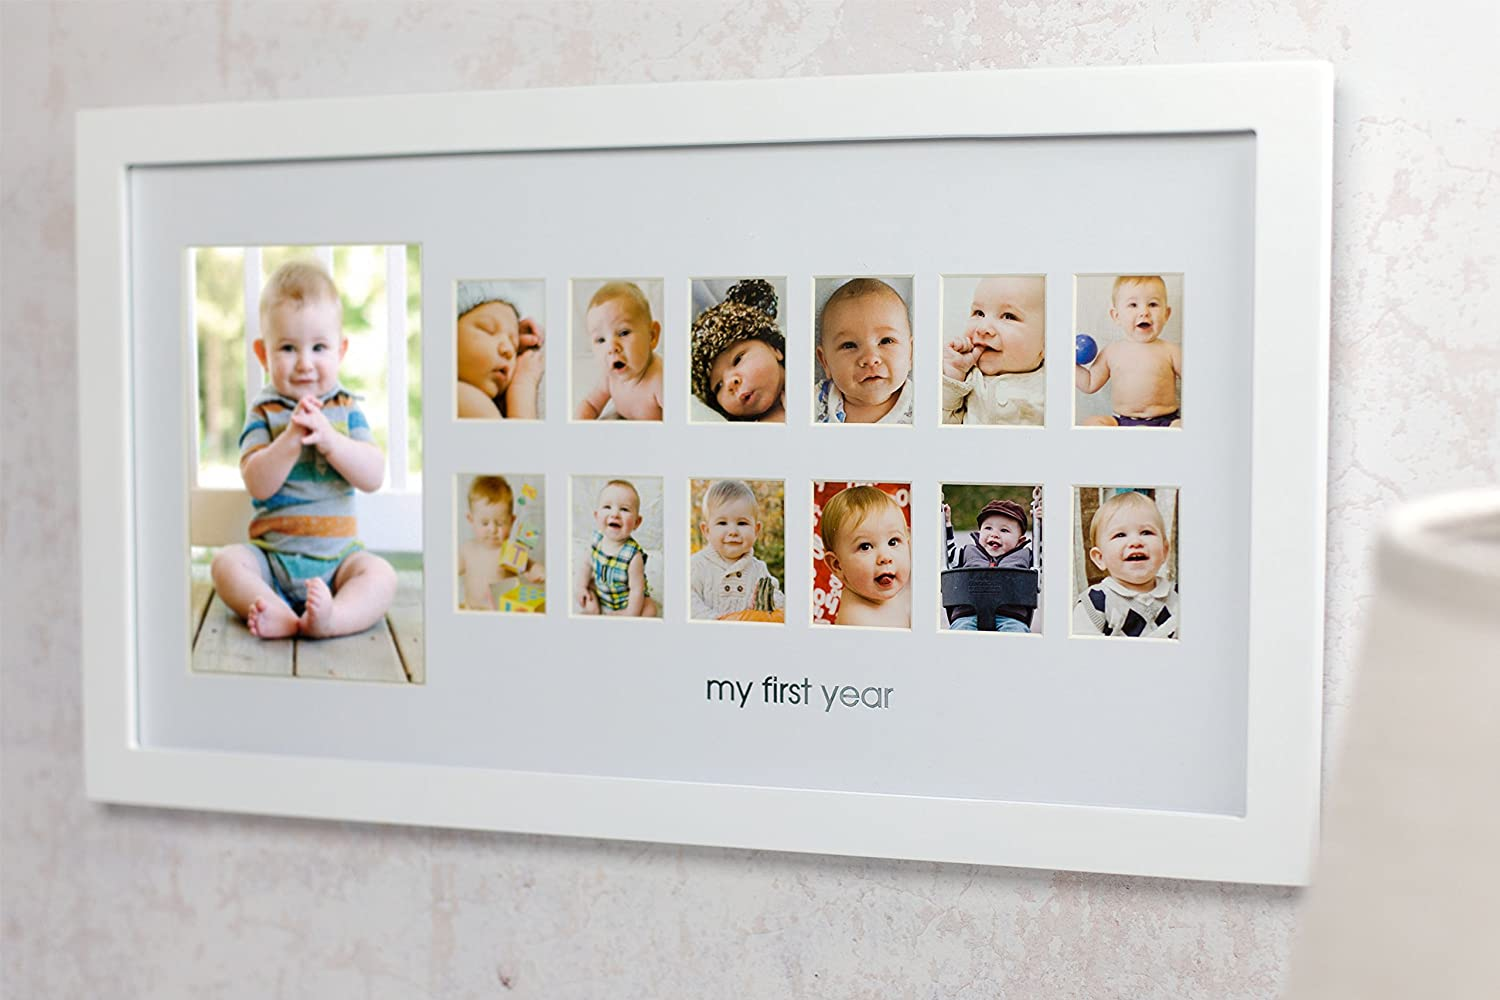 Pearhead Moments Keepsake My First Year Photo Frame, White: Amazon ...